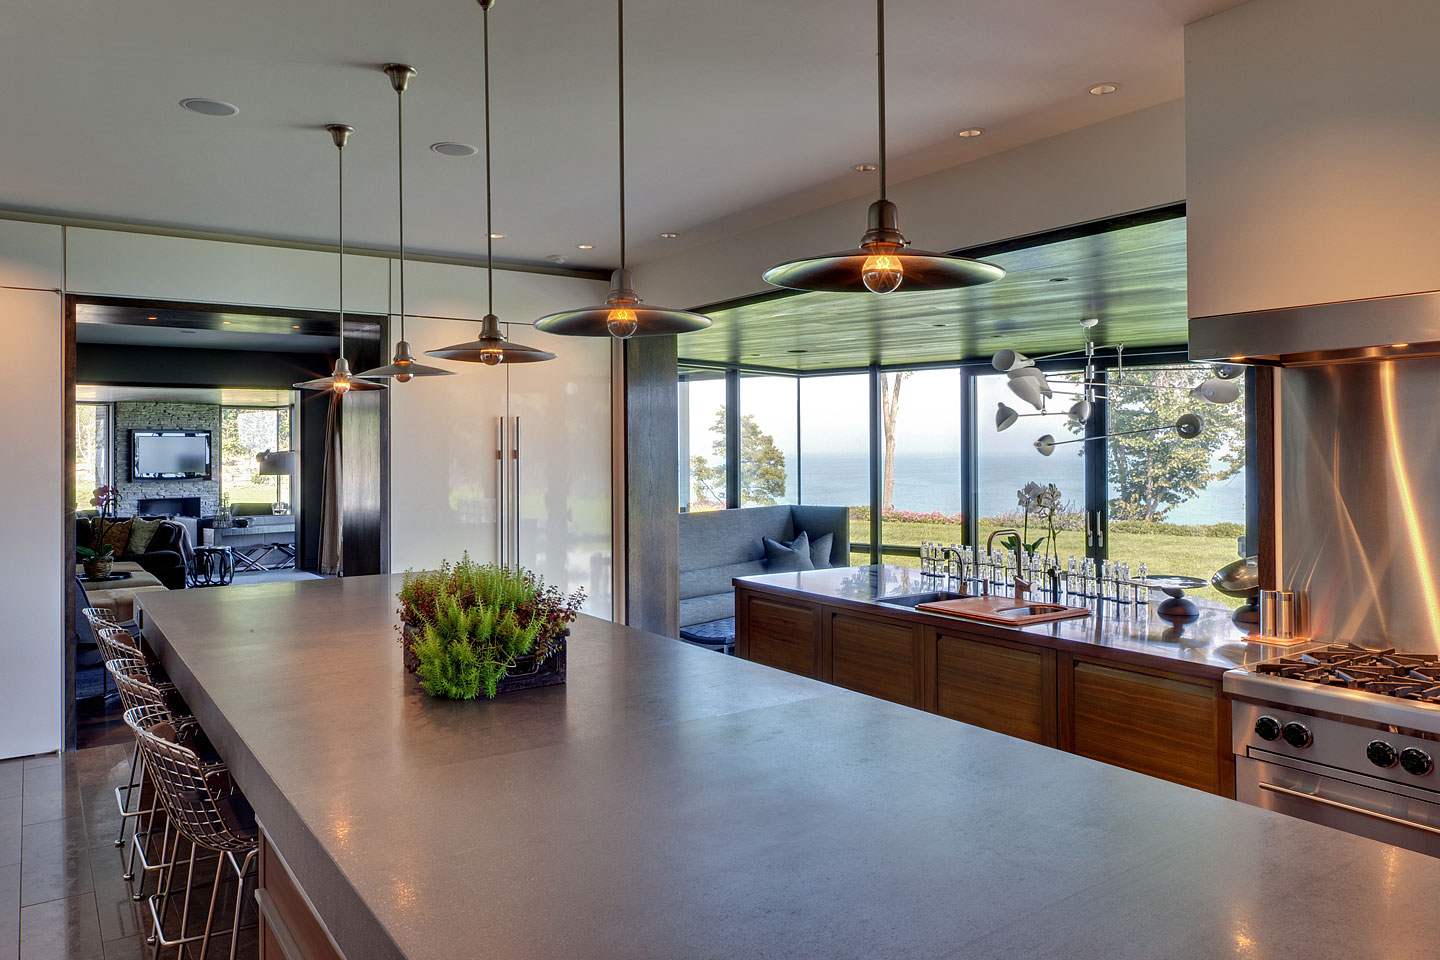 a perspective view (angle 02) of a modern professional kitchen, featuring views of Lake Michigan, photographed by Jacob Rosenfeld